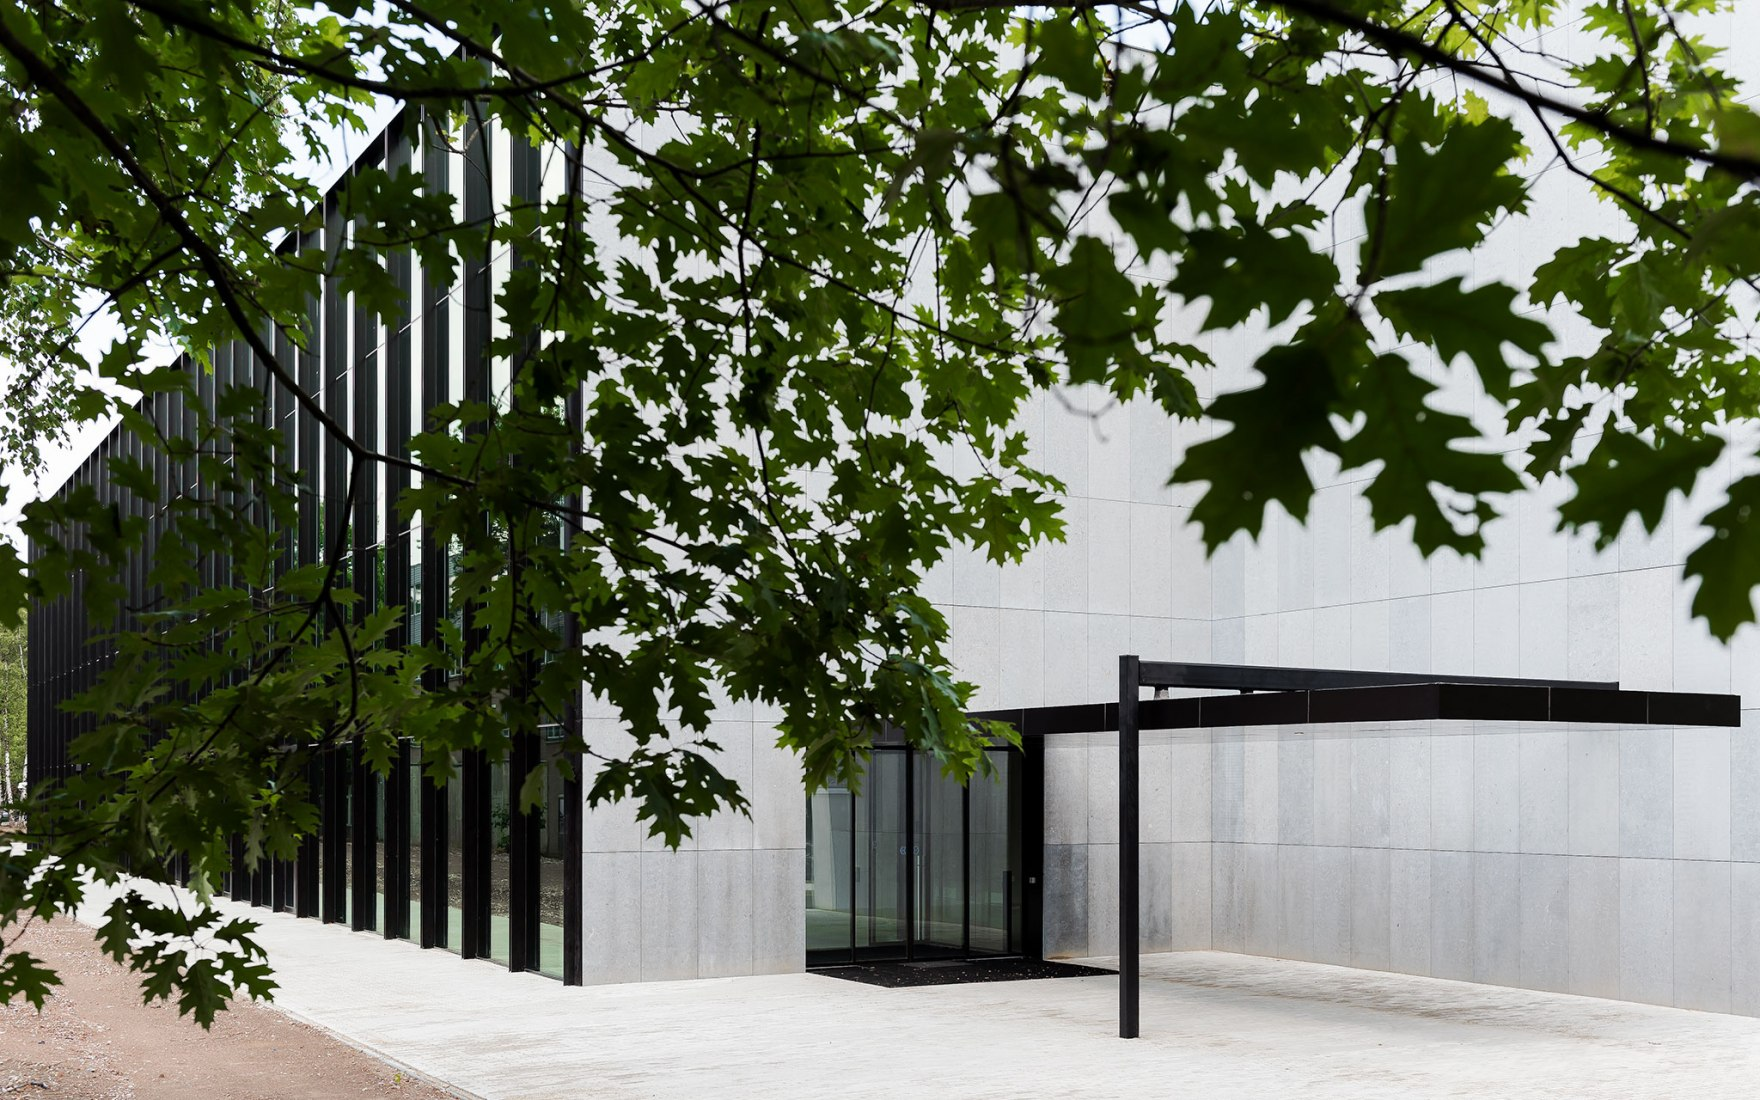 CUBE. Education and Self Study Center, by KAAN Architecten. Photograph by Sebastian van Damme